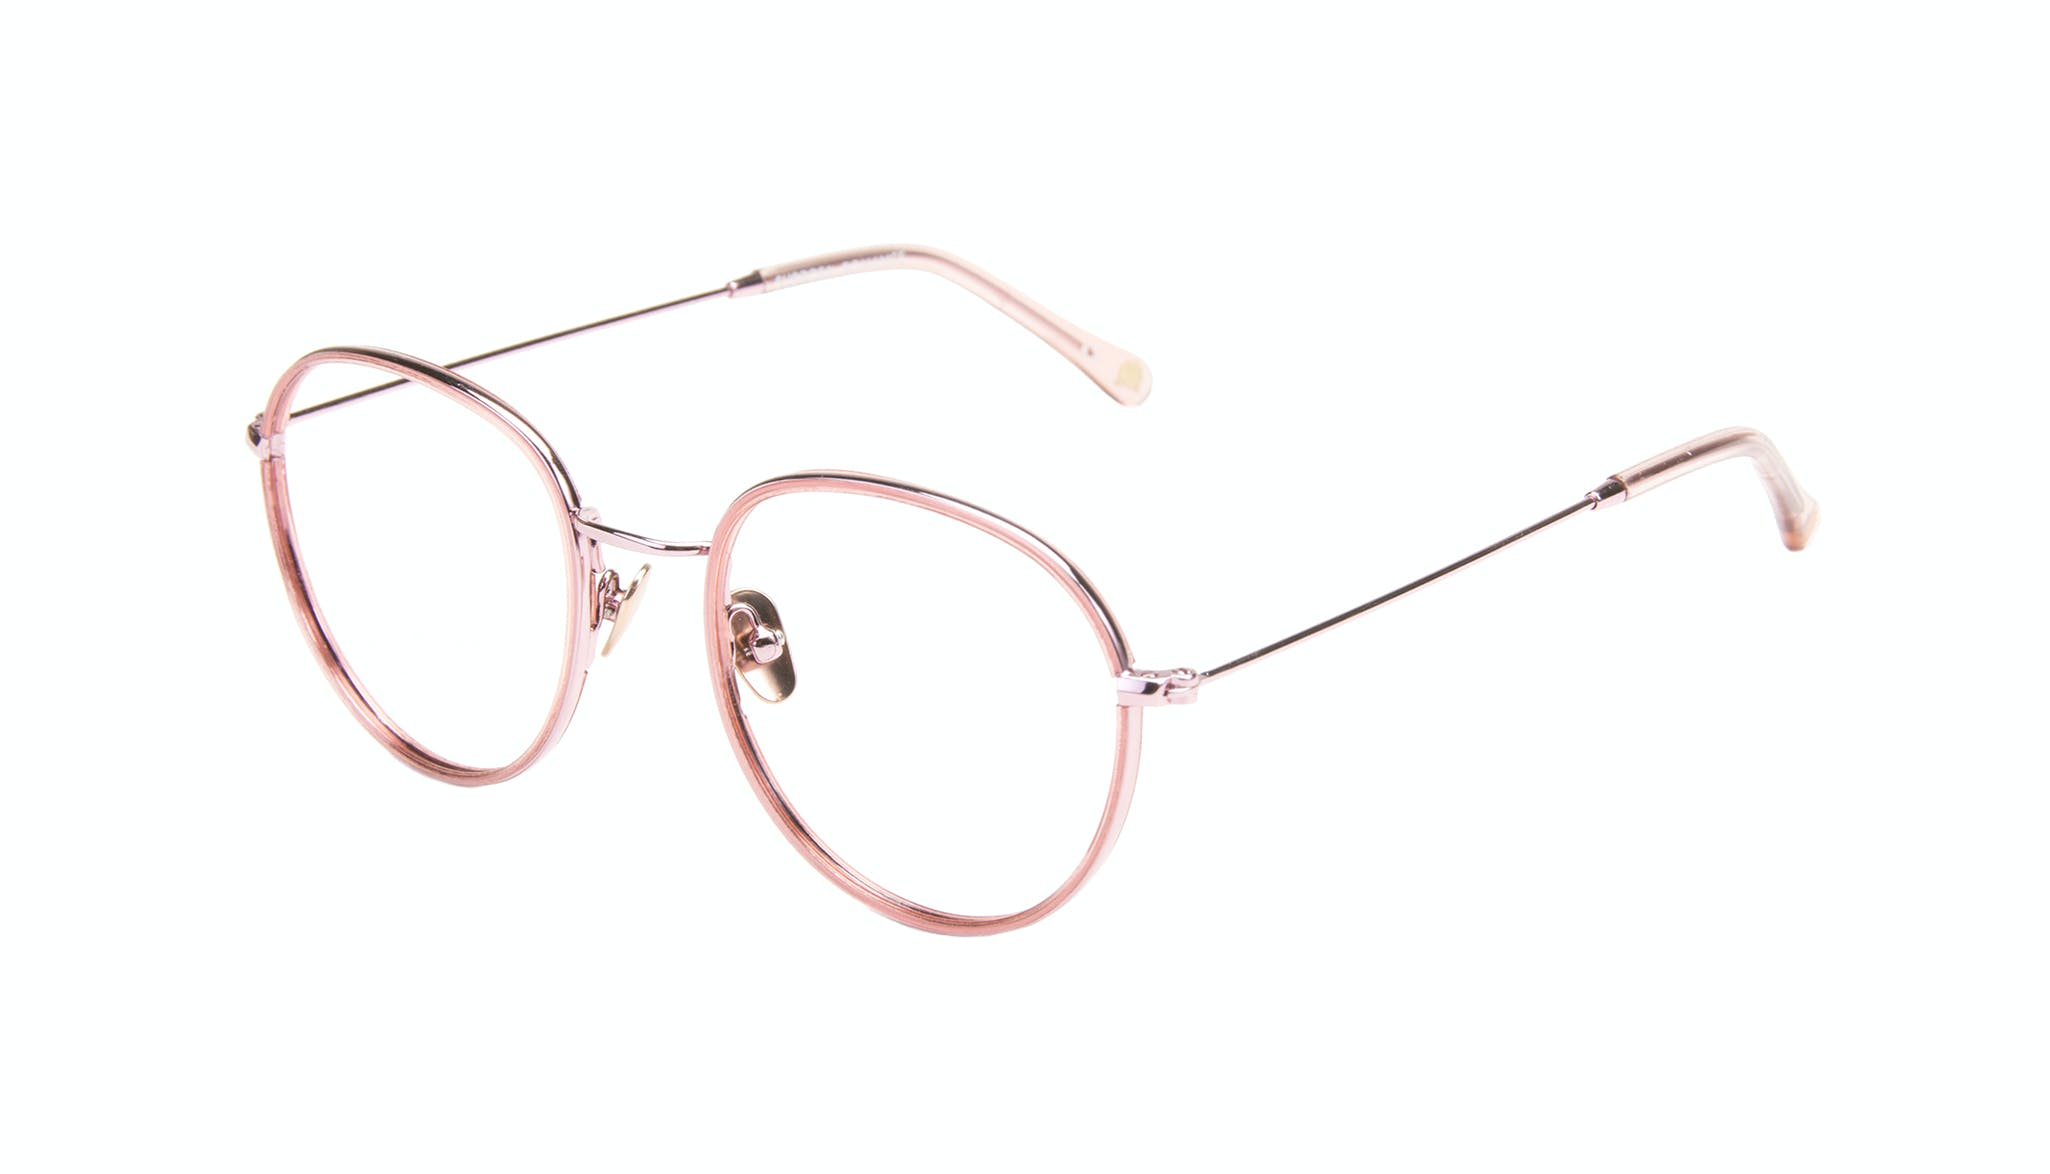 Affordable Fashion Glasses Aviator Round Eyeglasses Women Subrosa Romance Tilt